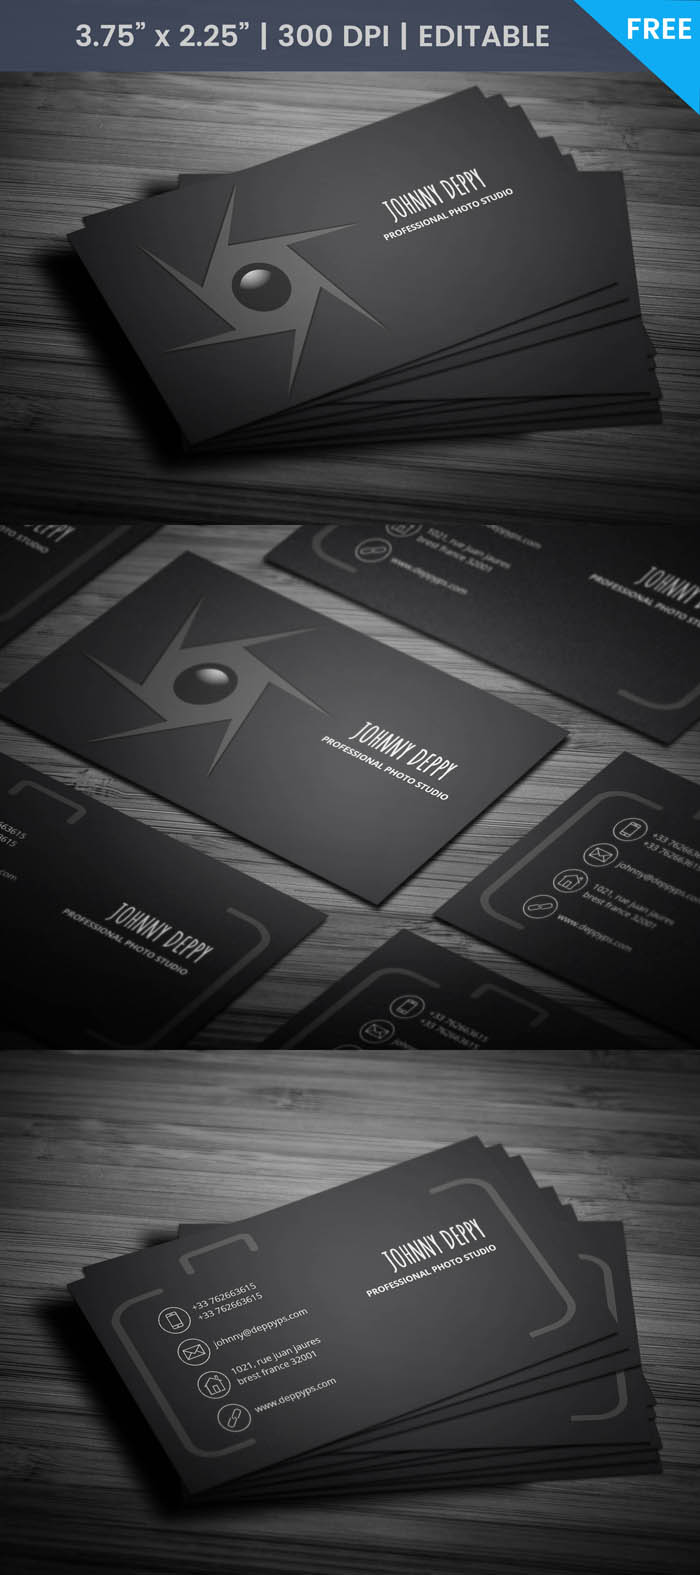 Unique Photographer Business Card - Full Preview